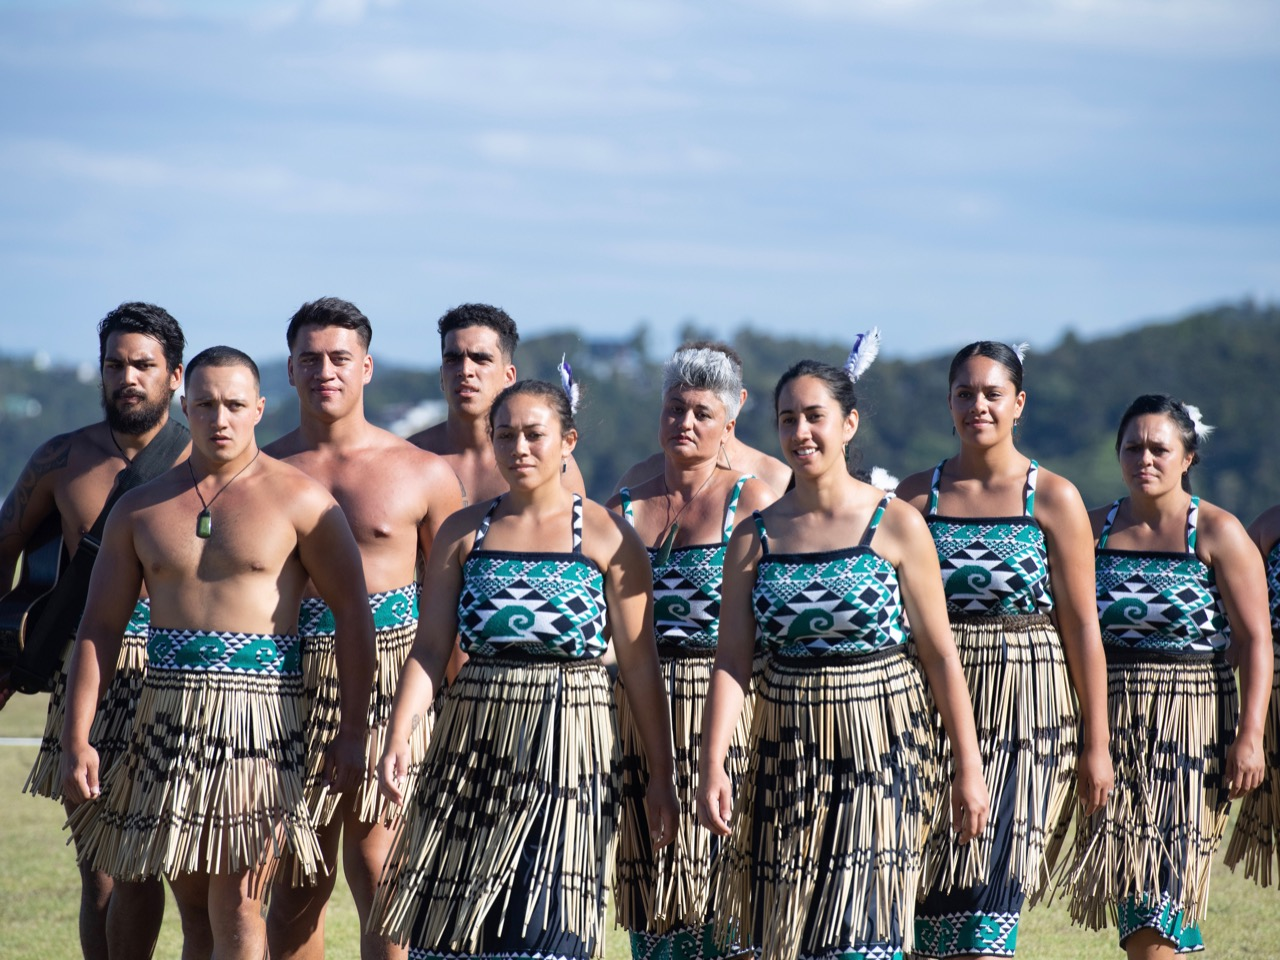 Dominic O'Sullivan: Māori sovereignty should count in public affairs